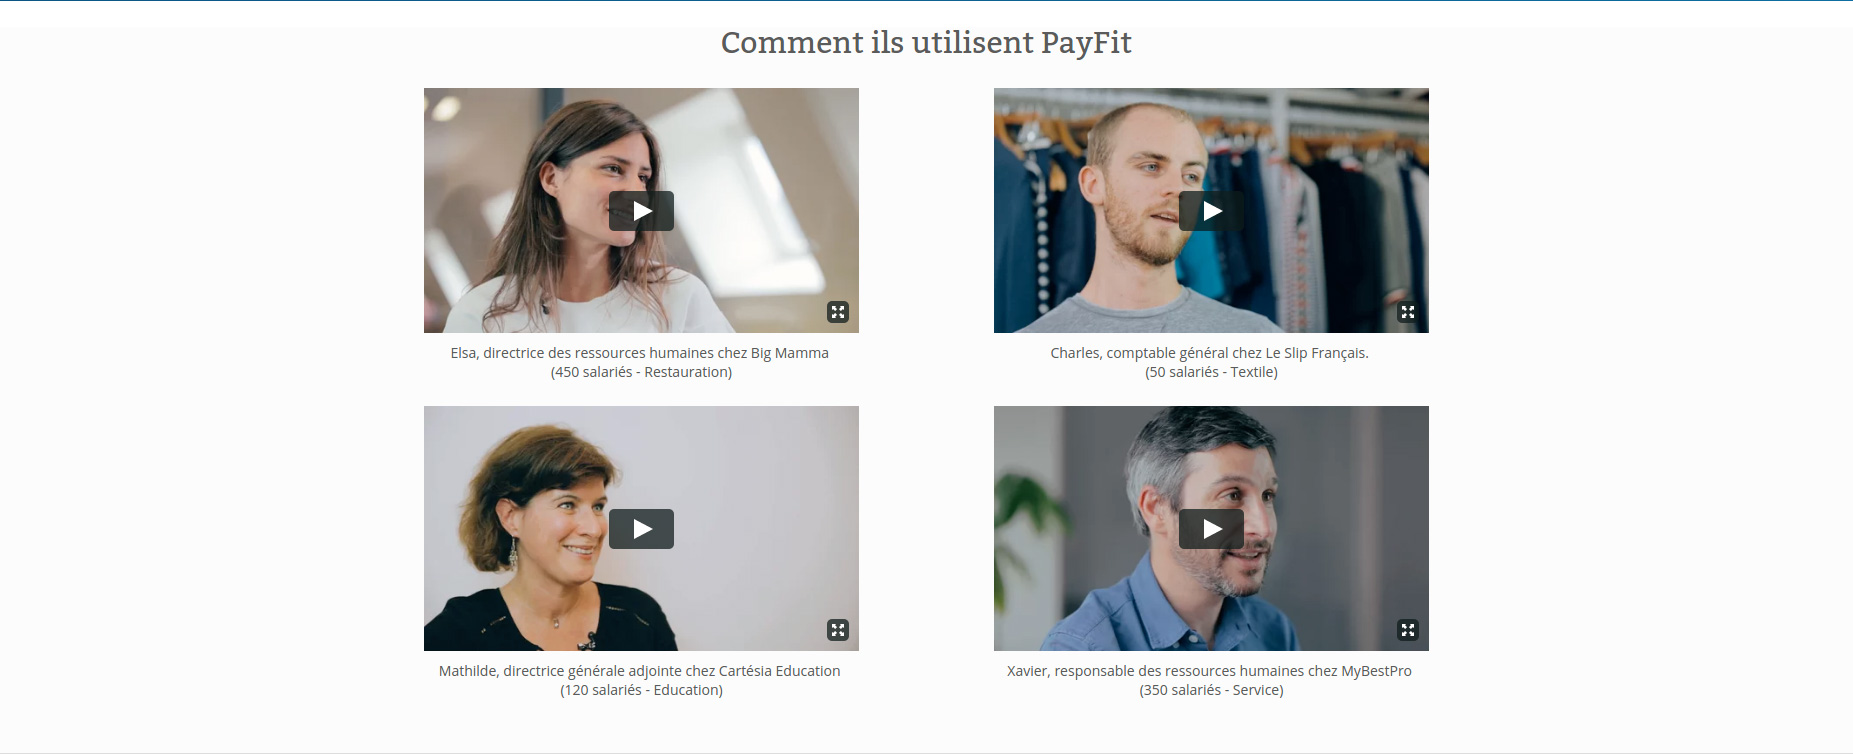 Video testimonials on Payfit's website